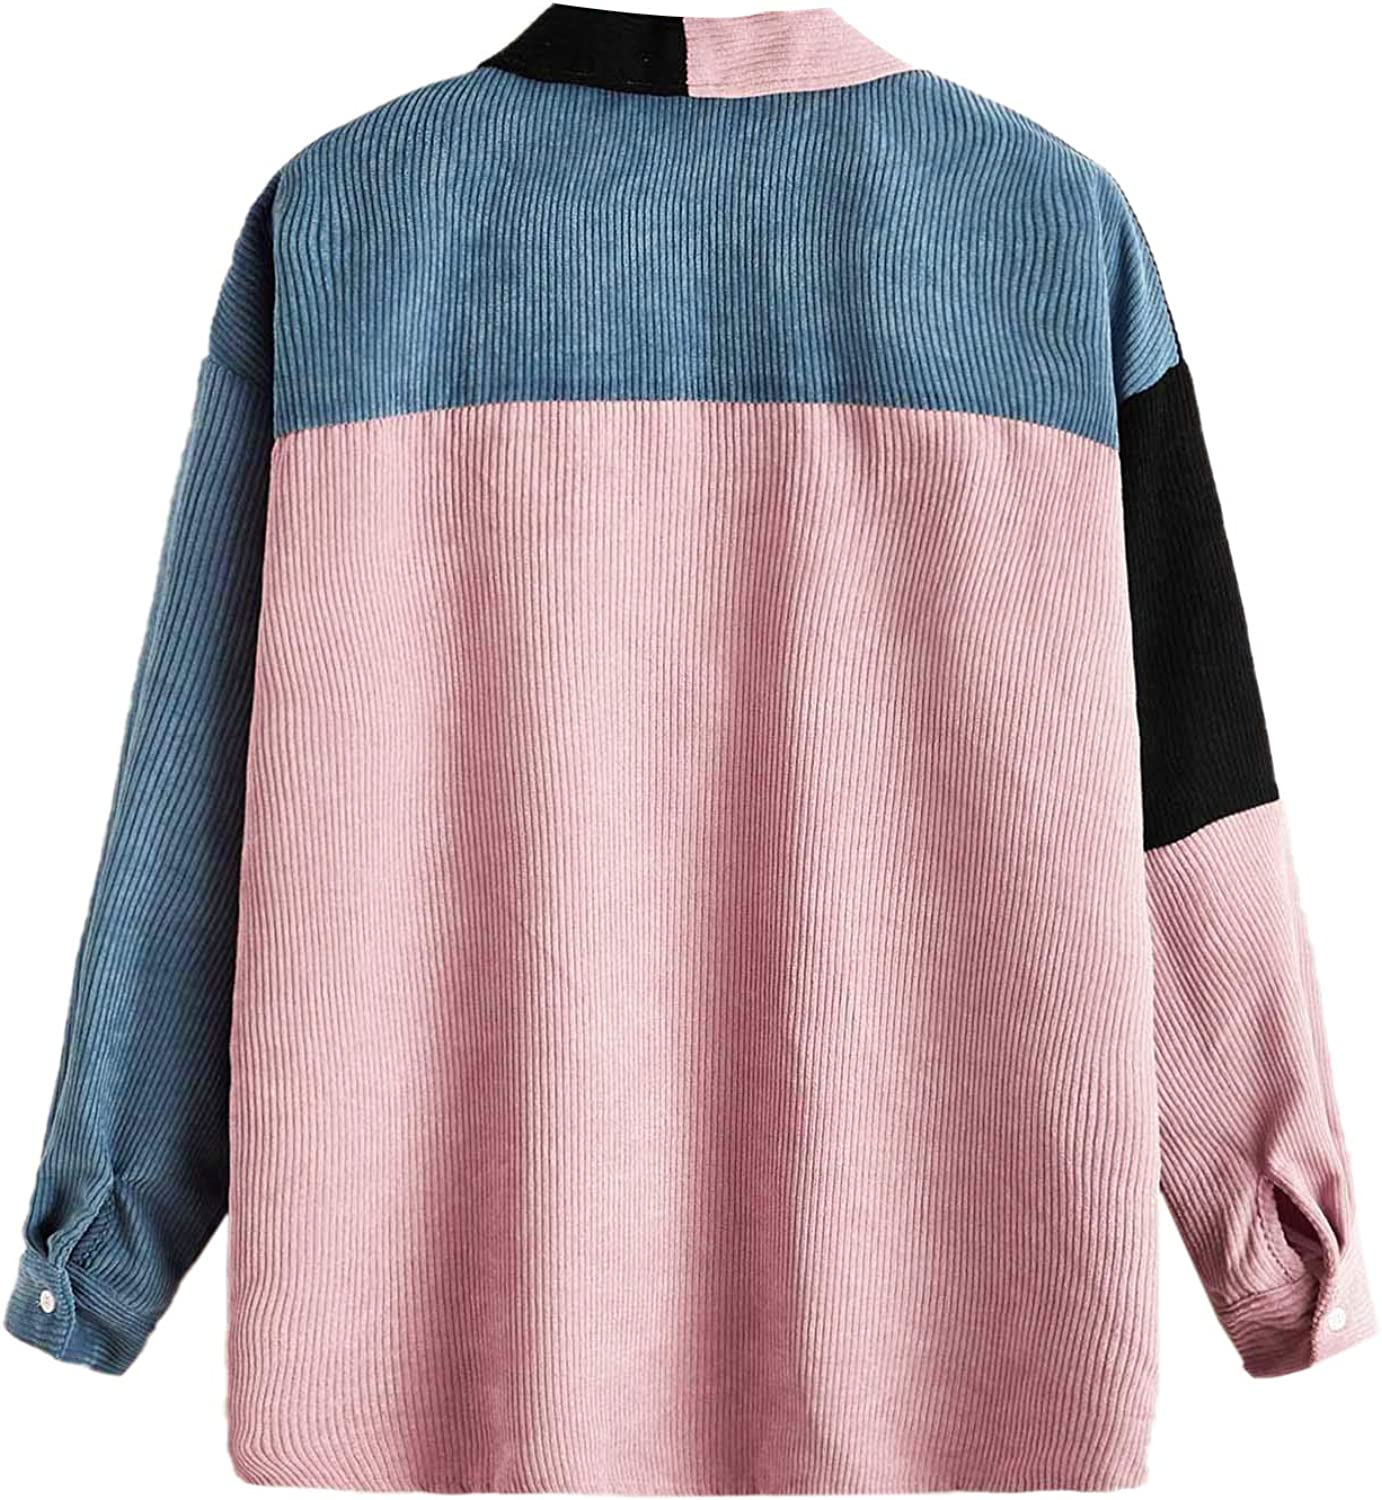 Romwe Women's Collar Button Down Colorblock Long Sleeve Casual Jacket Outwear with Front Pockets